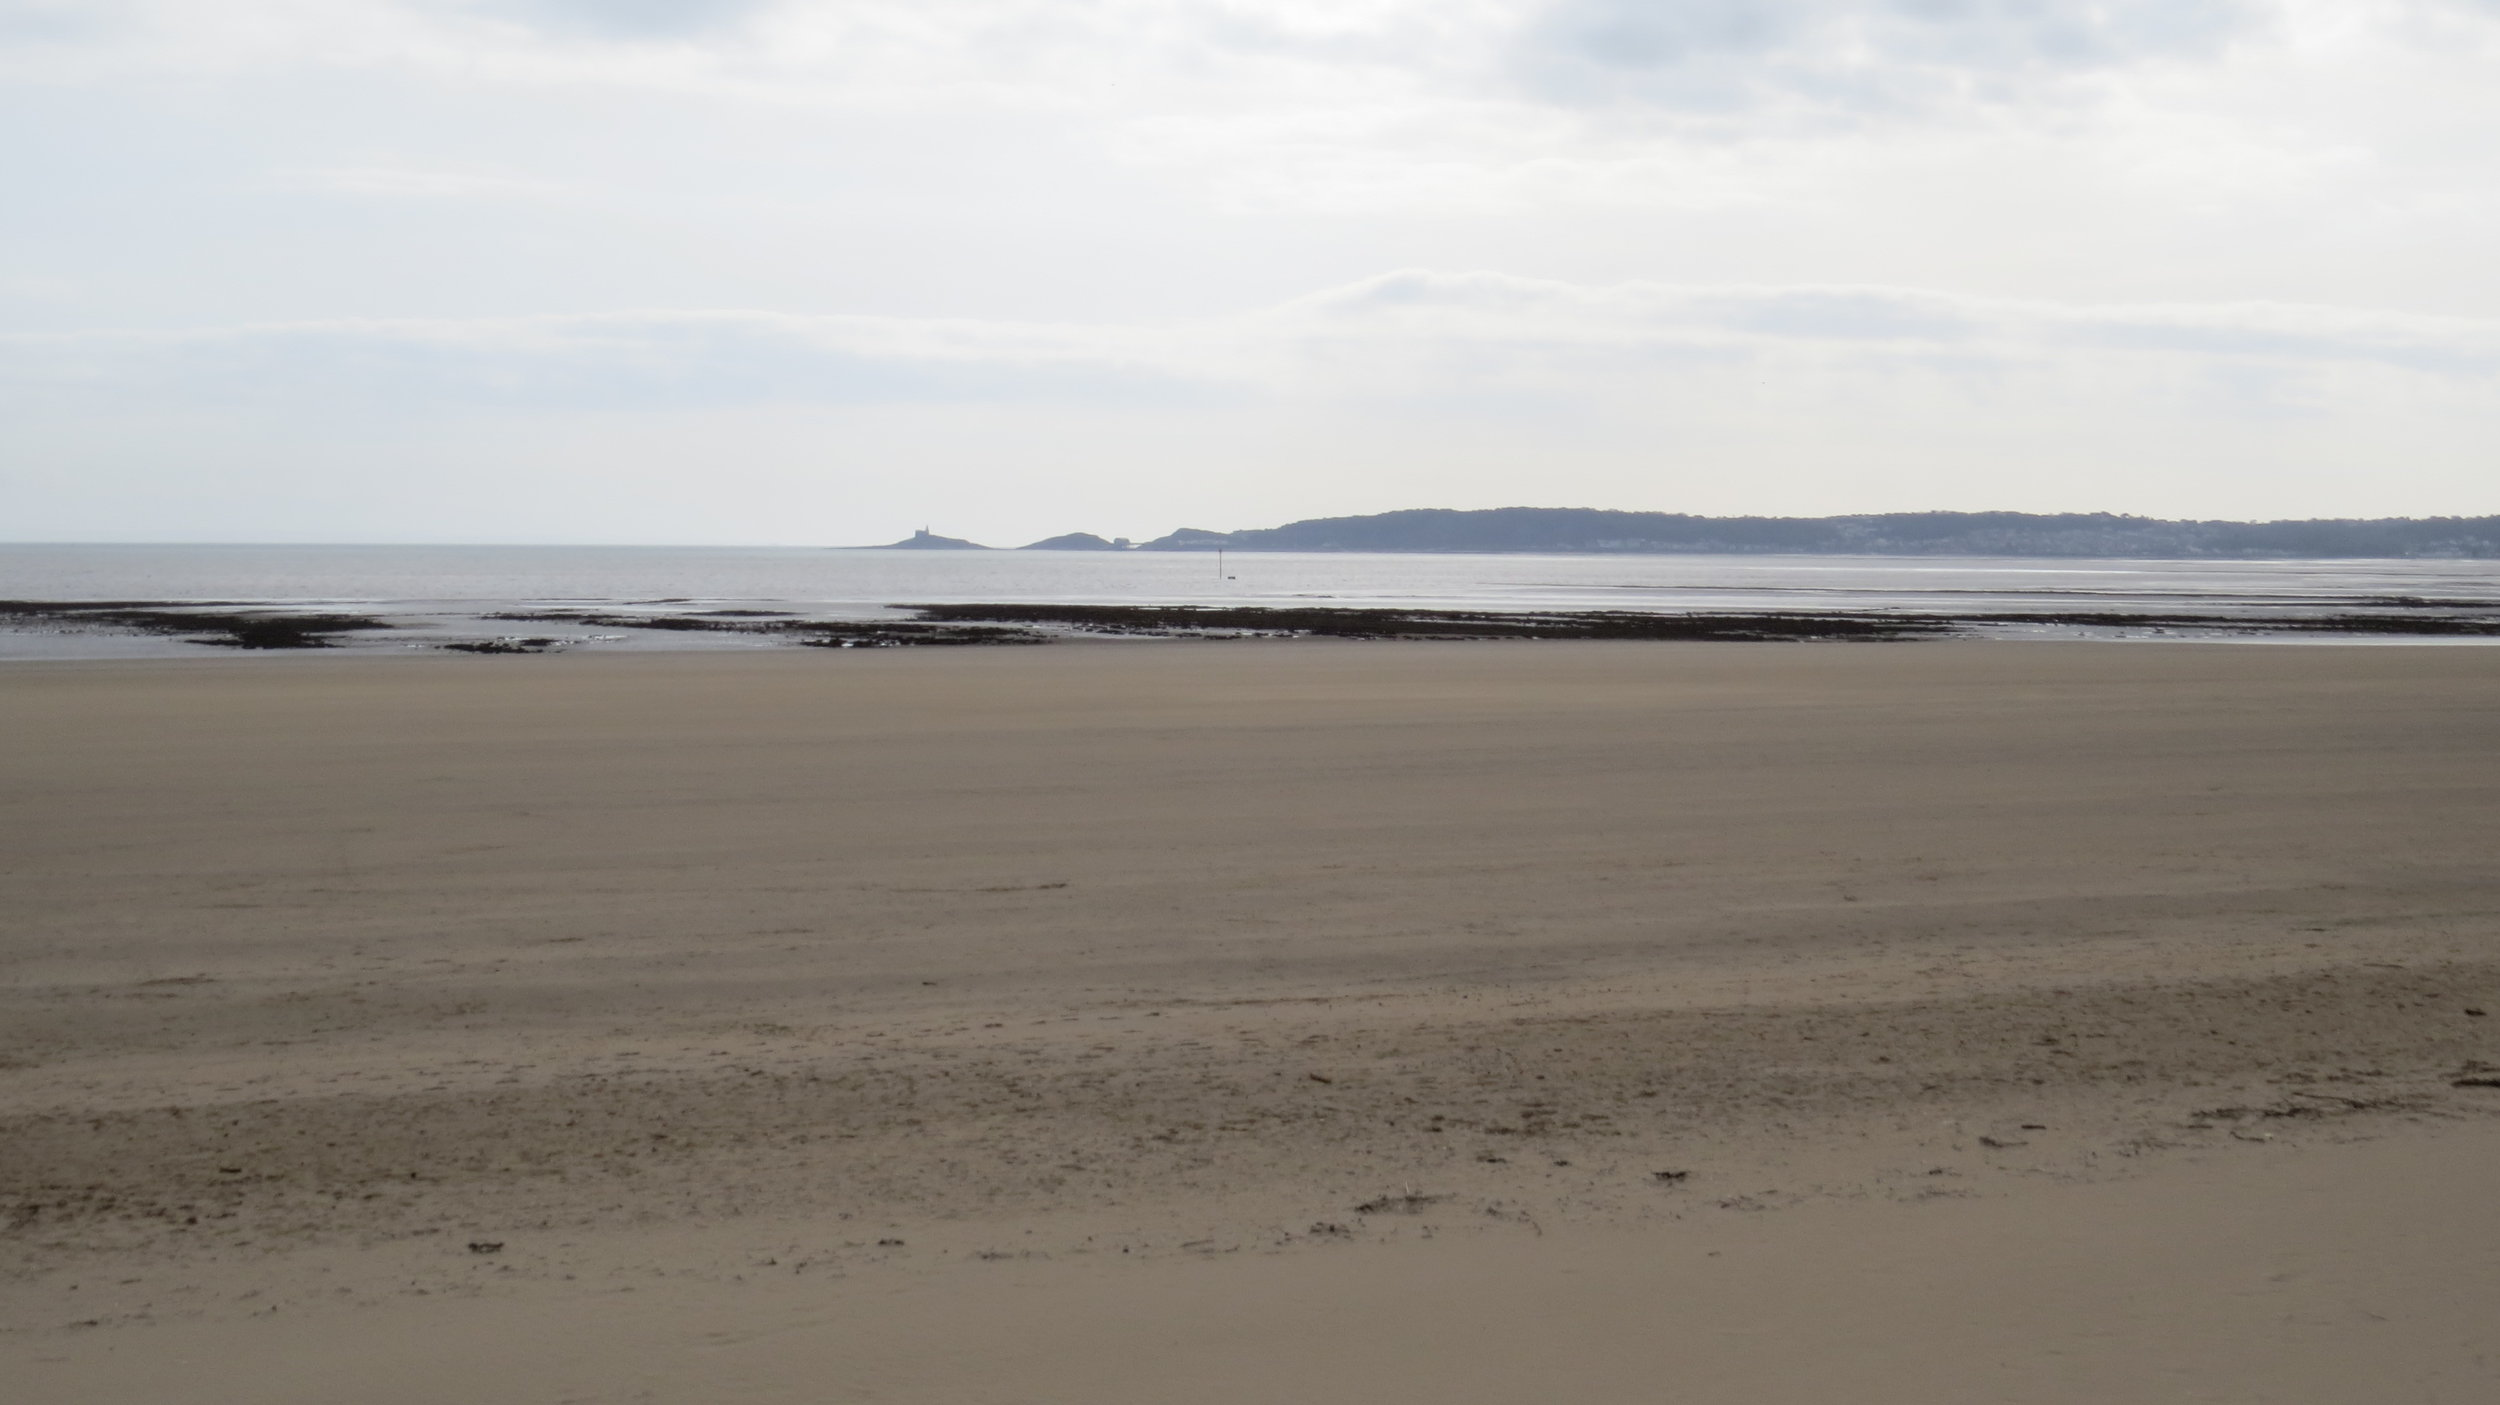 Looking Towards the Mumbles